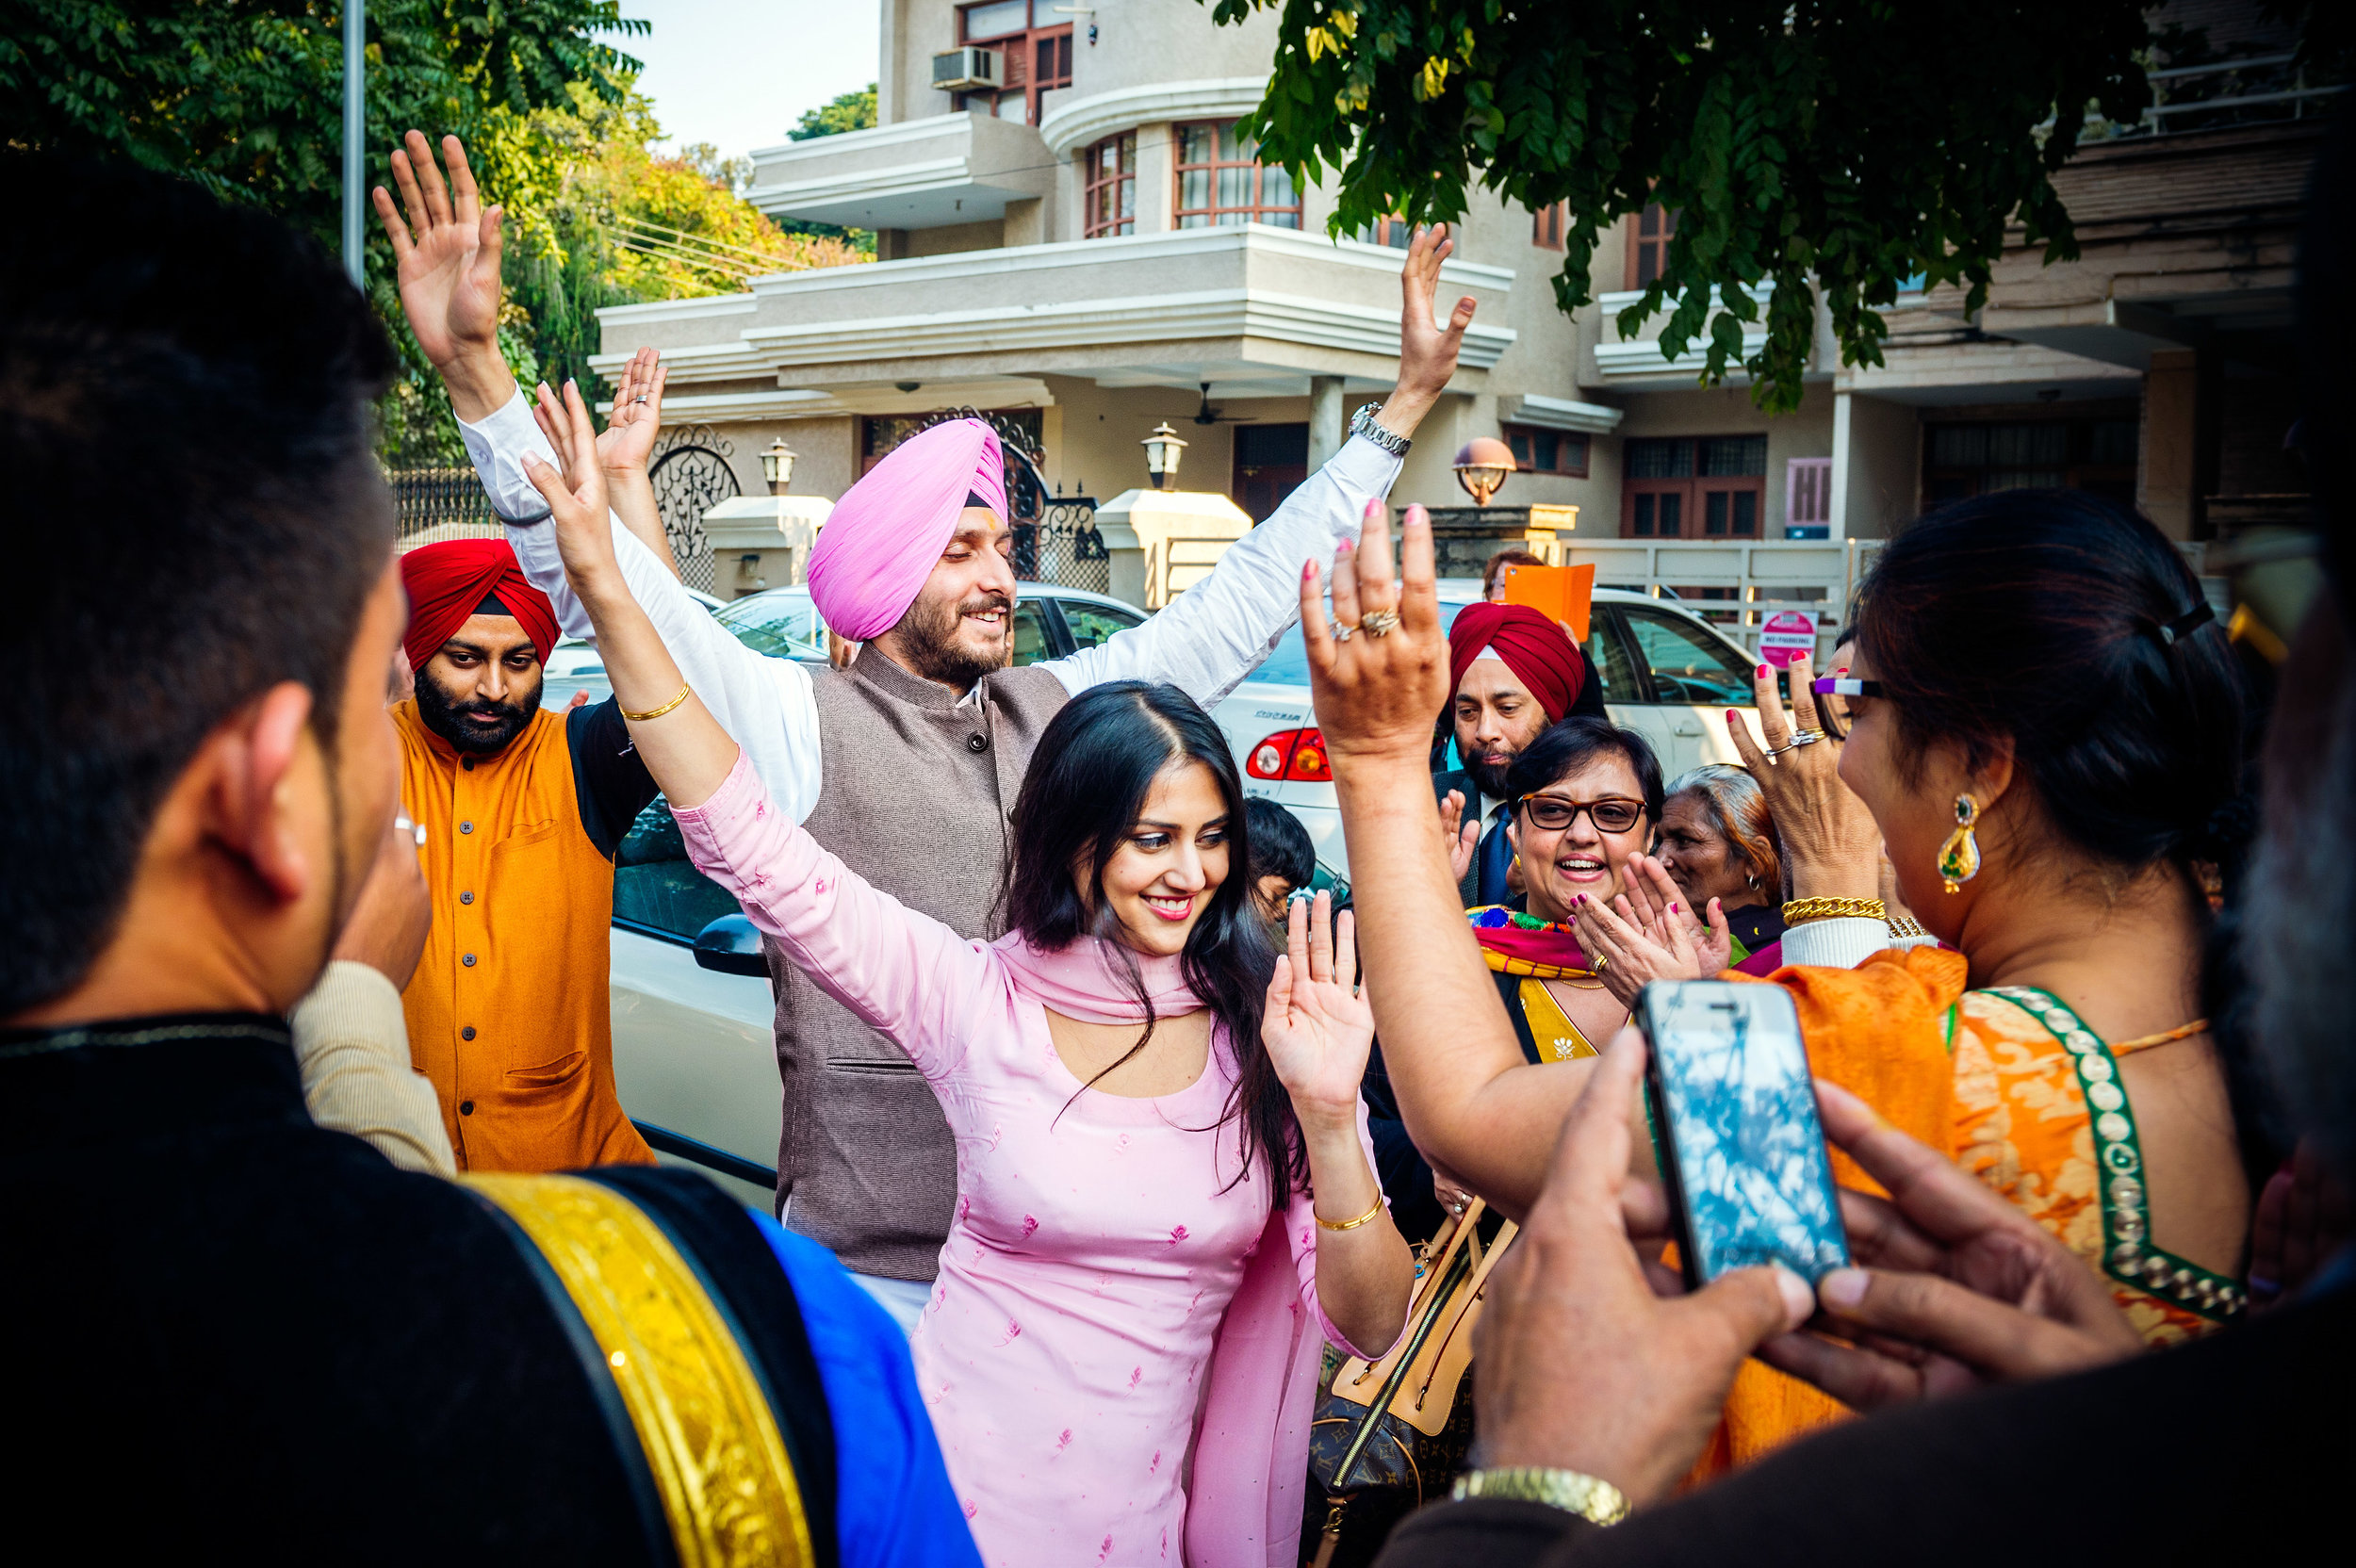 Likewise for the couple who were getting married, they were having lots of fun dancing in the streets towards the Gurudwara.